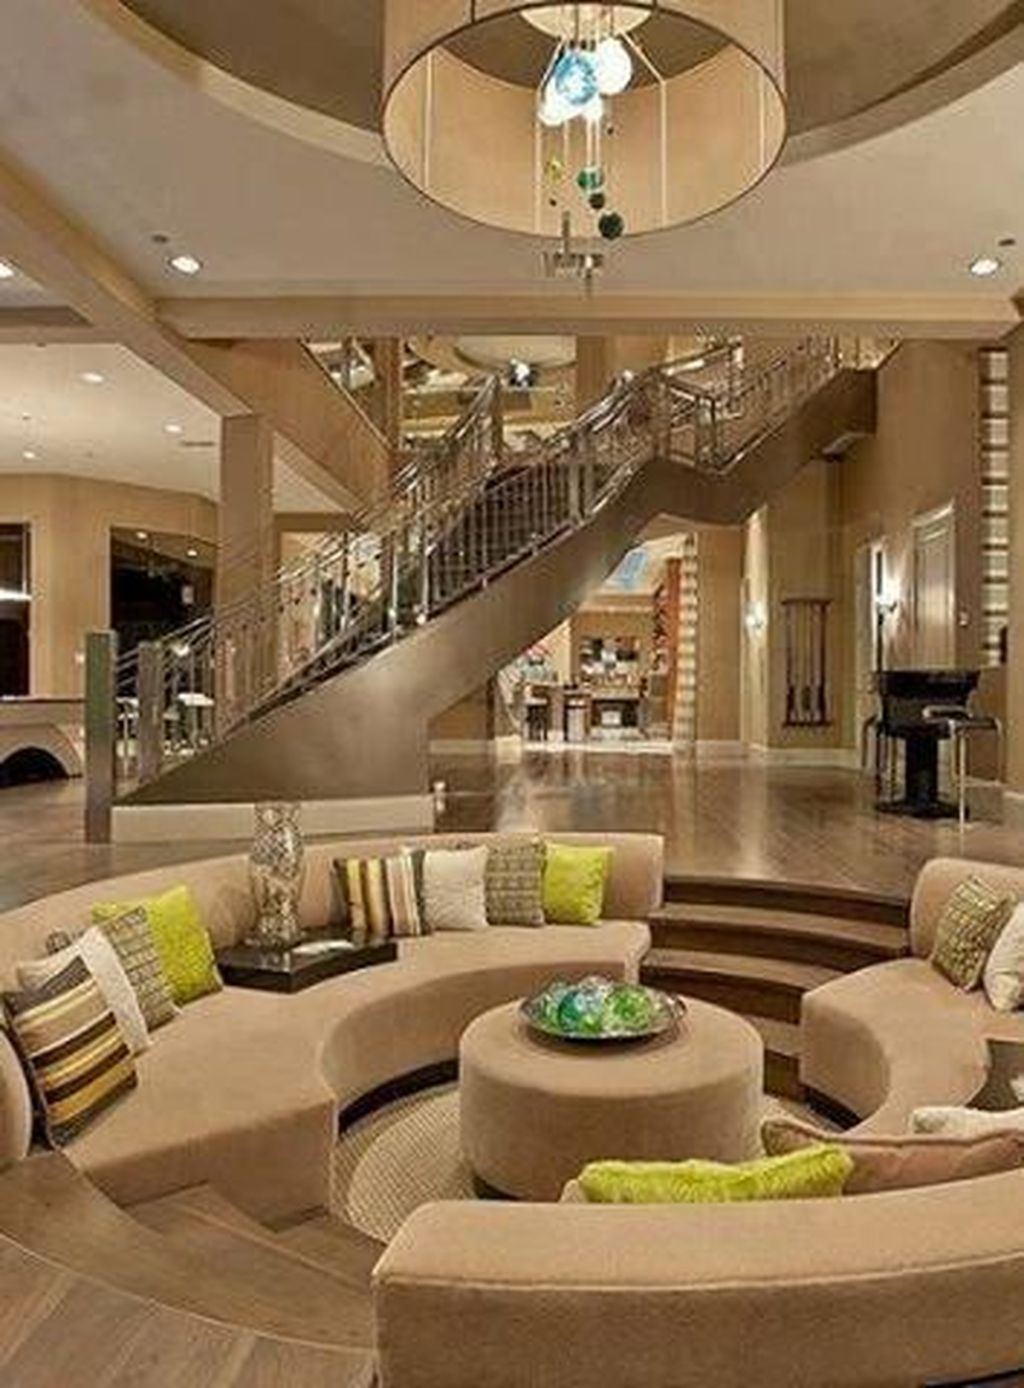 Inspiring Luxury Interior Design Ideas For Living Room39